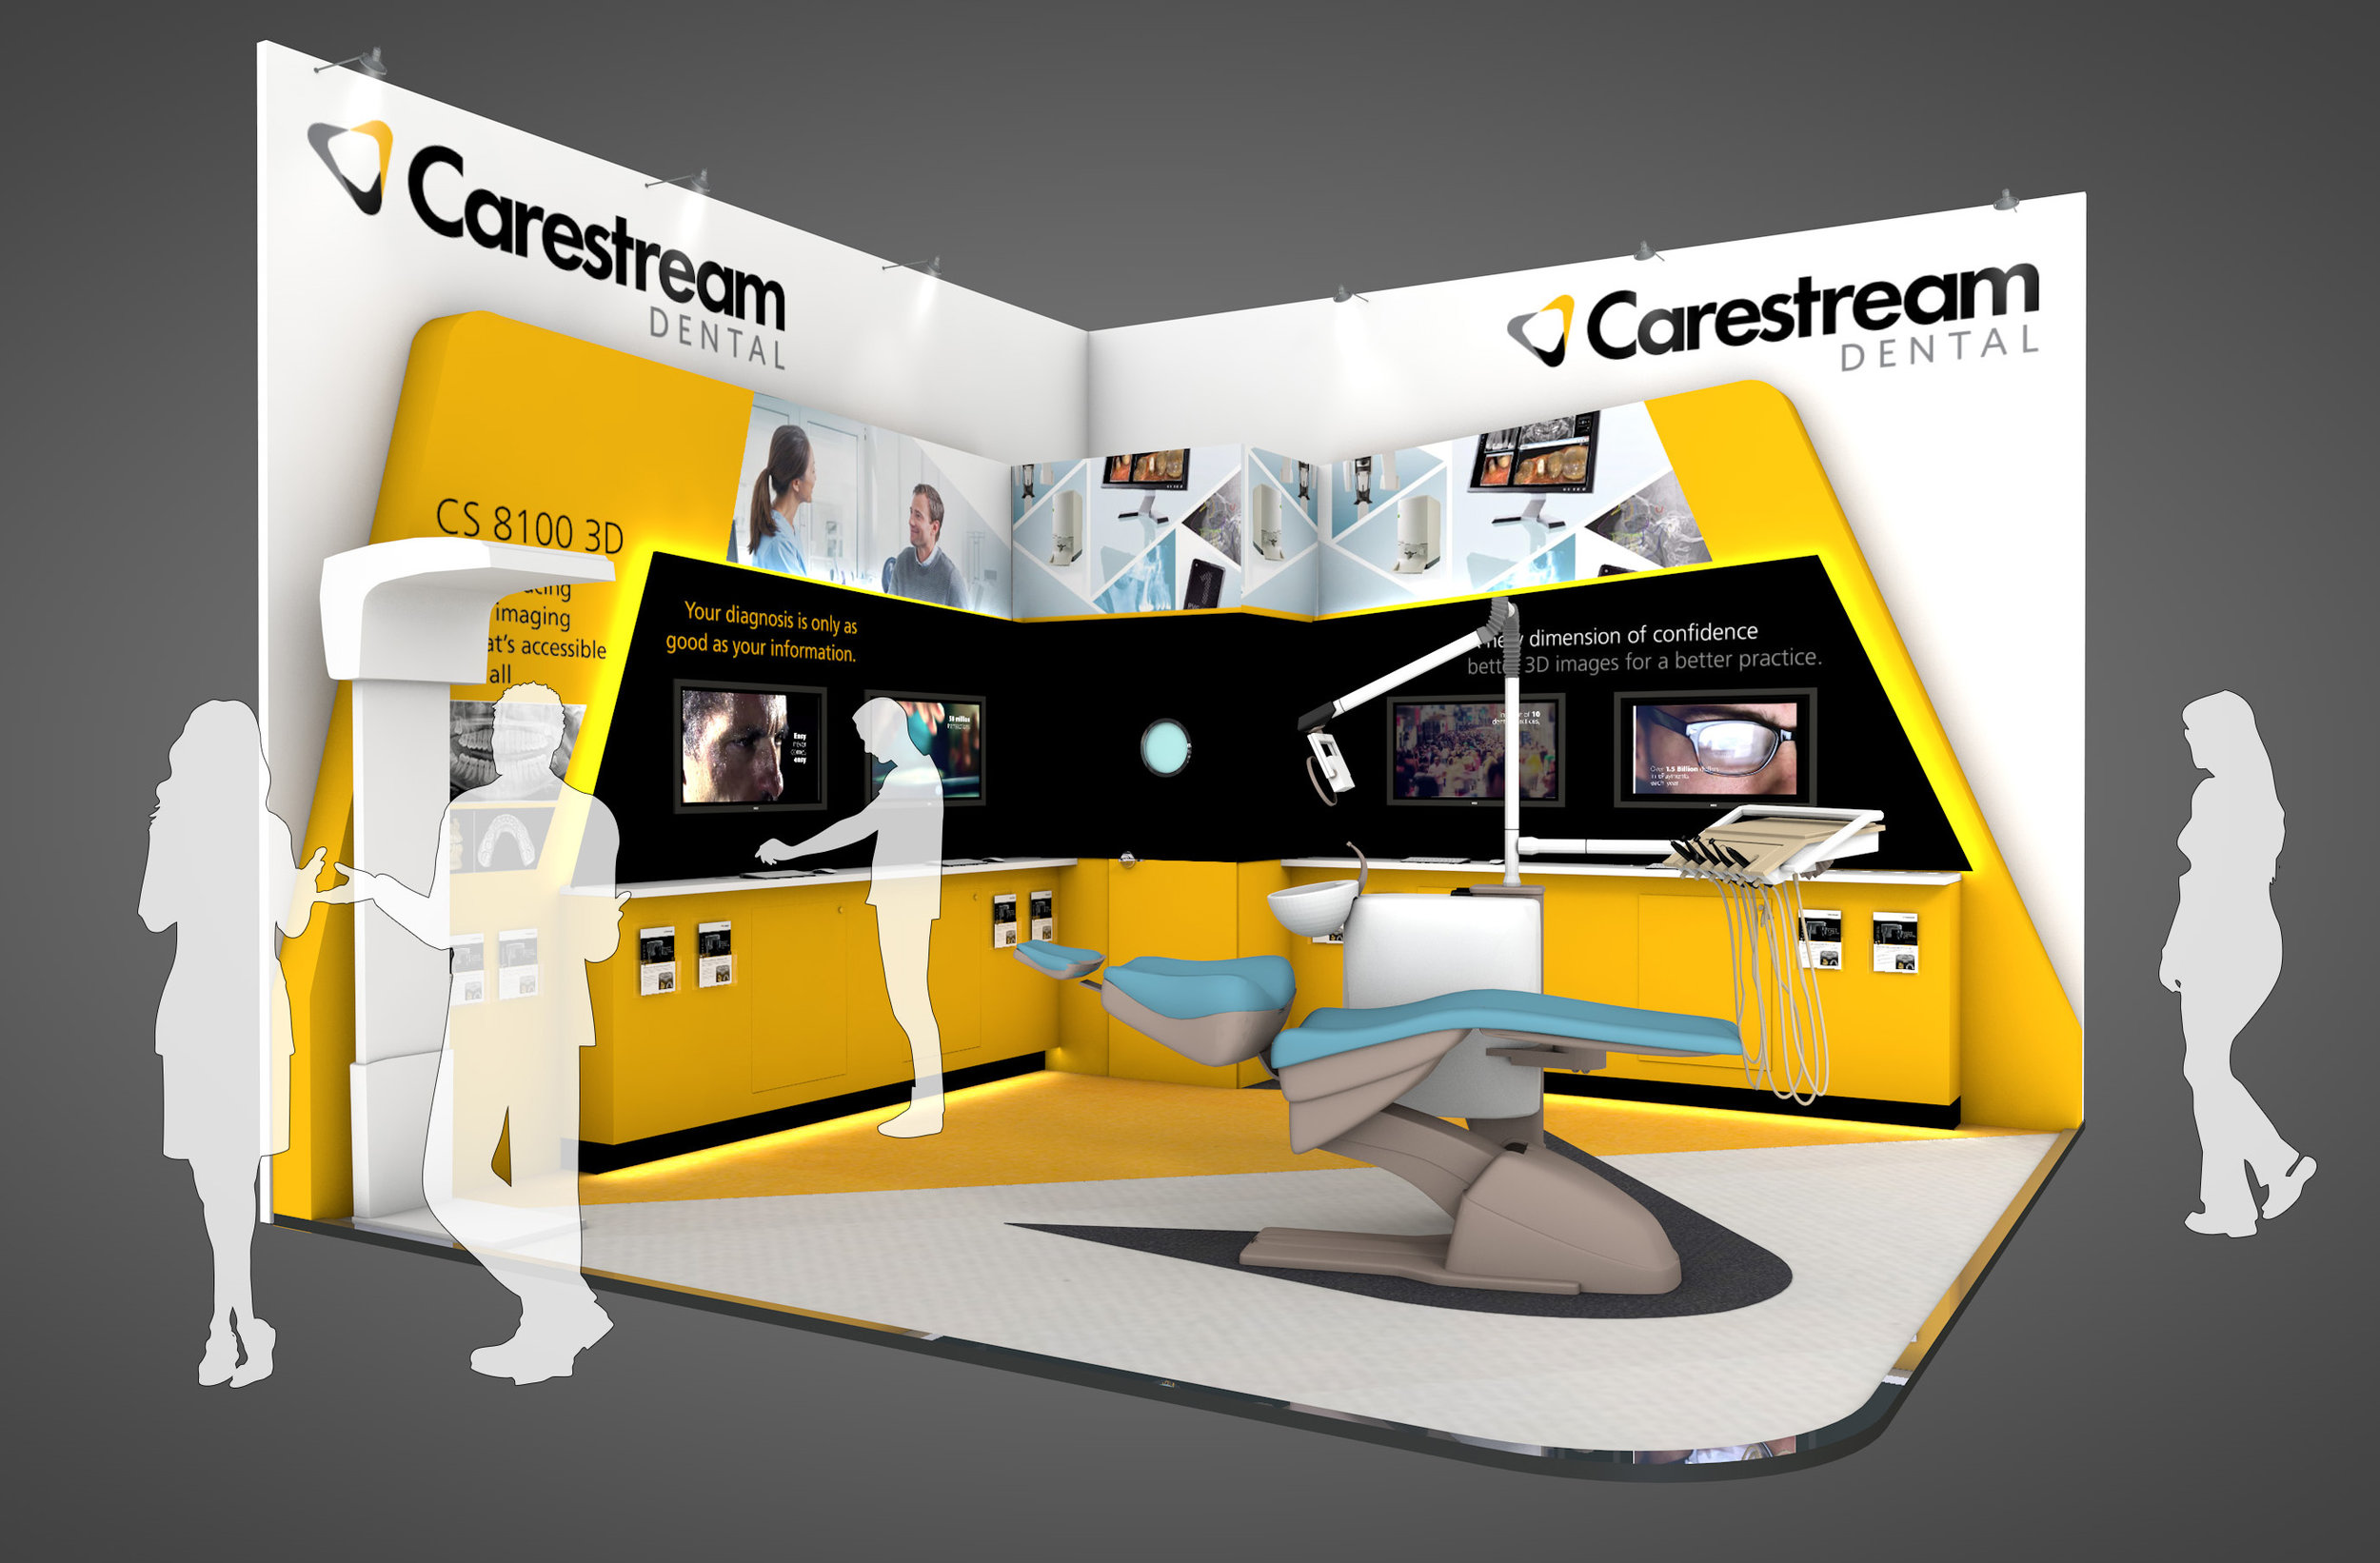 Carestream Exhibition Stand